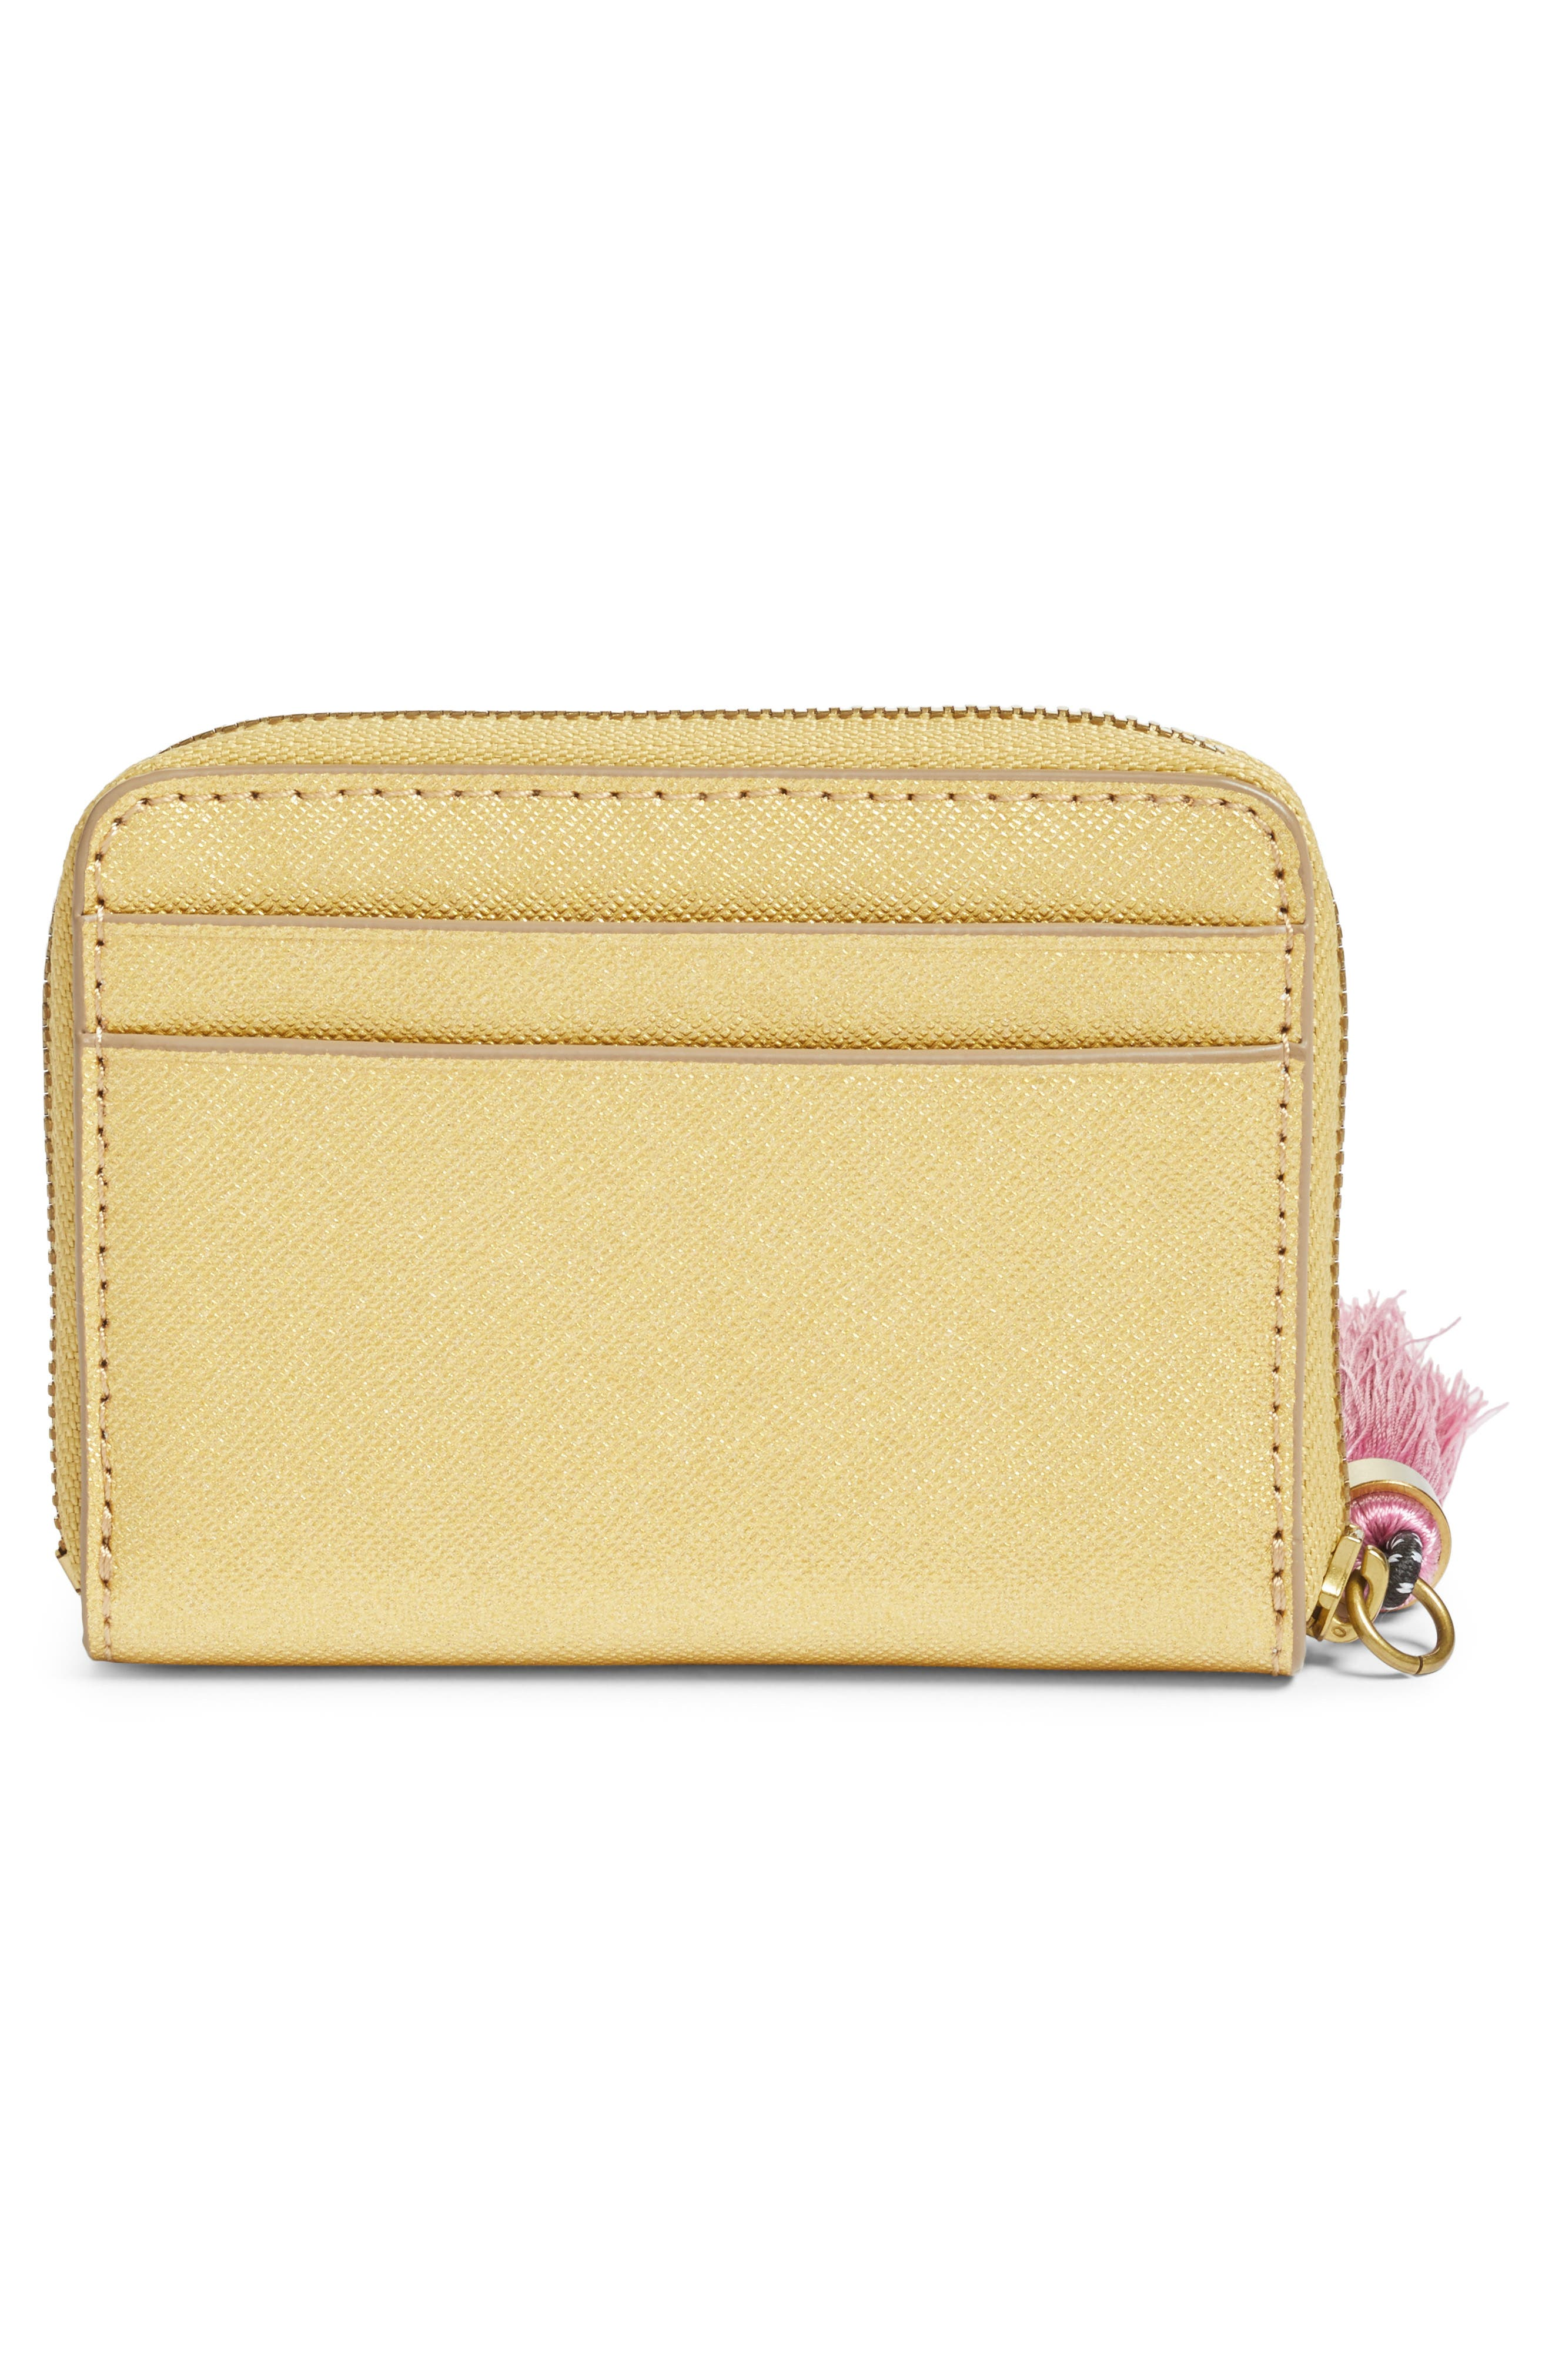 Saffiano Italian Leather Card Case with Tassel,                             Alternate thumbnail 3, color,                             Gold